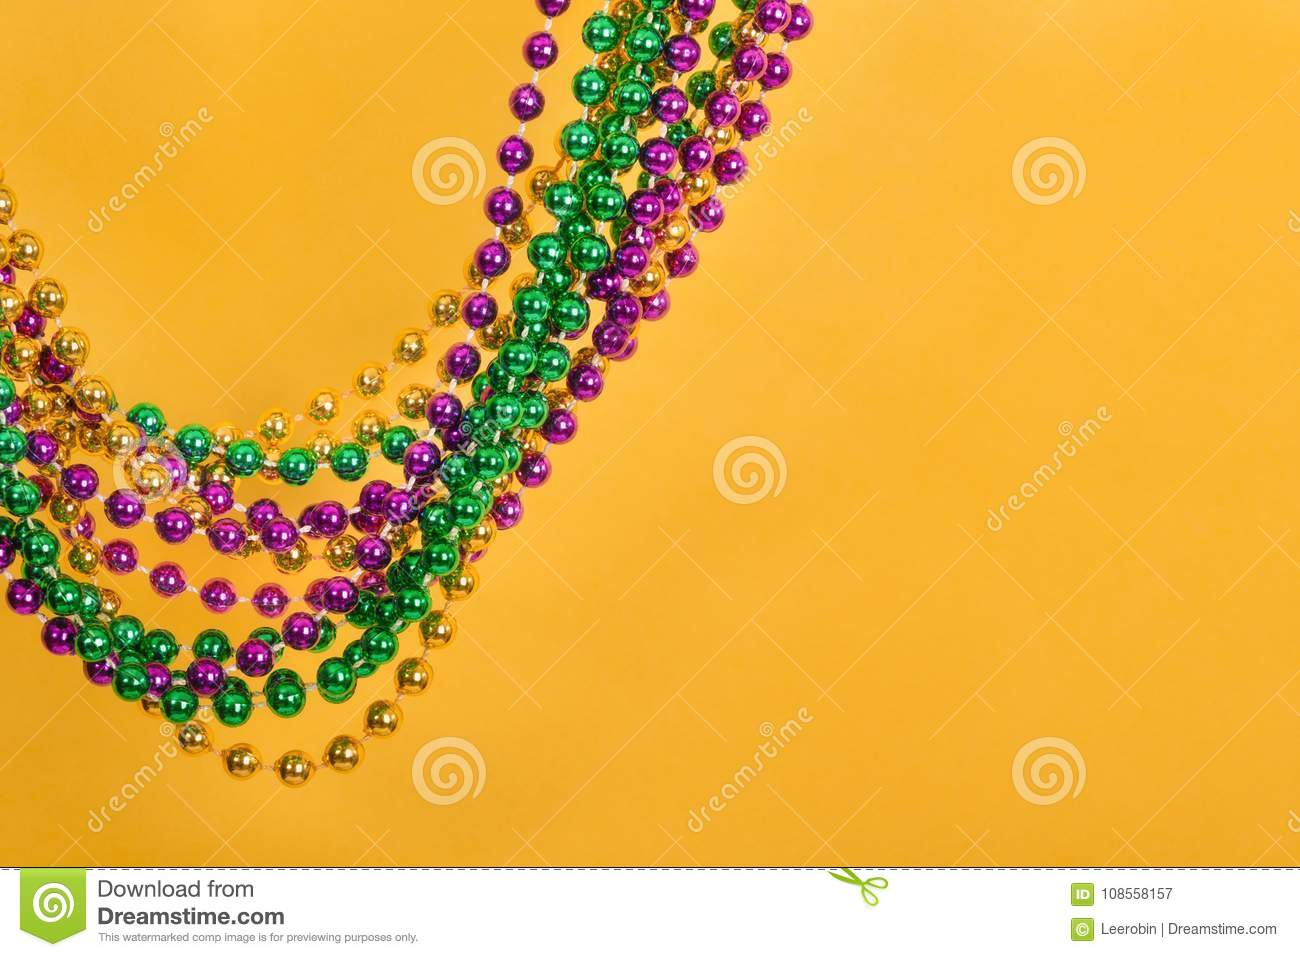 Mardi Gras beads against yellow background